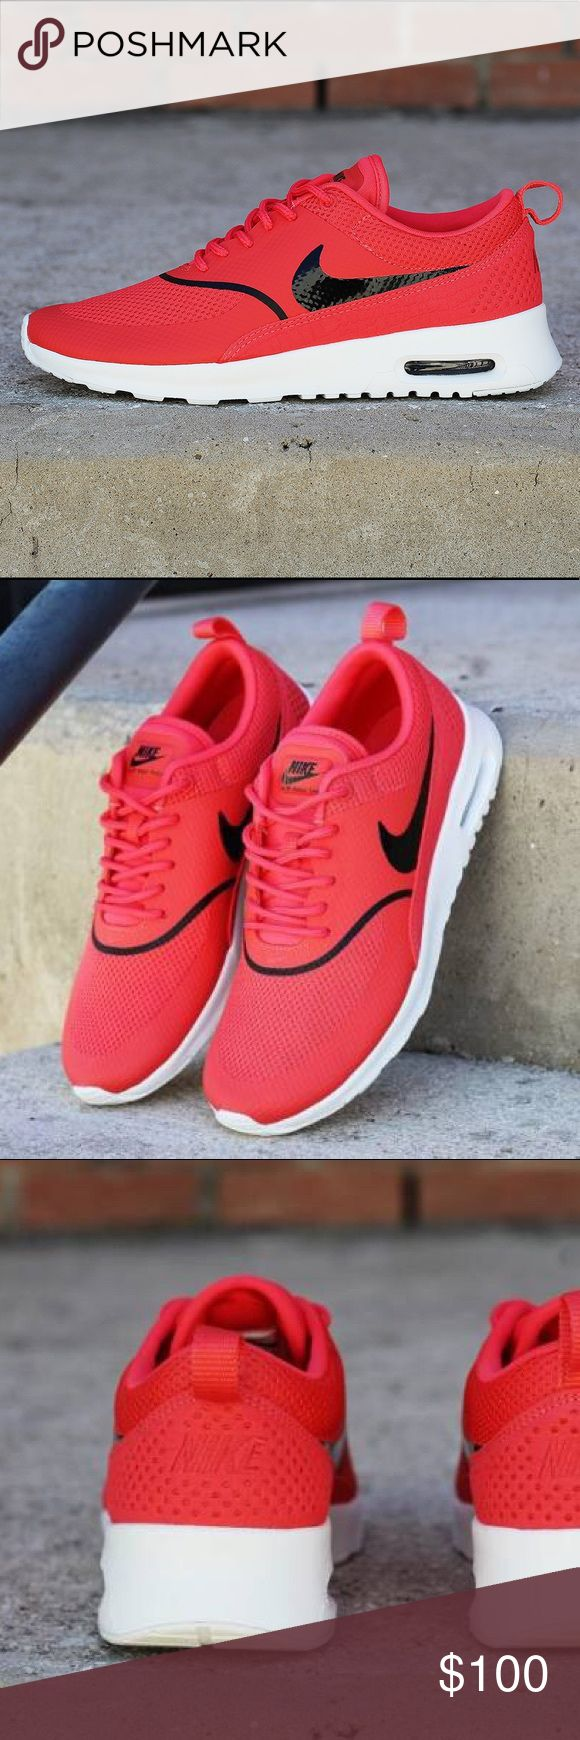 100% Hight Quality Nike Air Max 2015 Slide Slippers Red Yellow